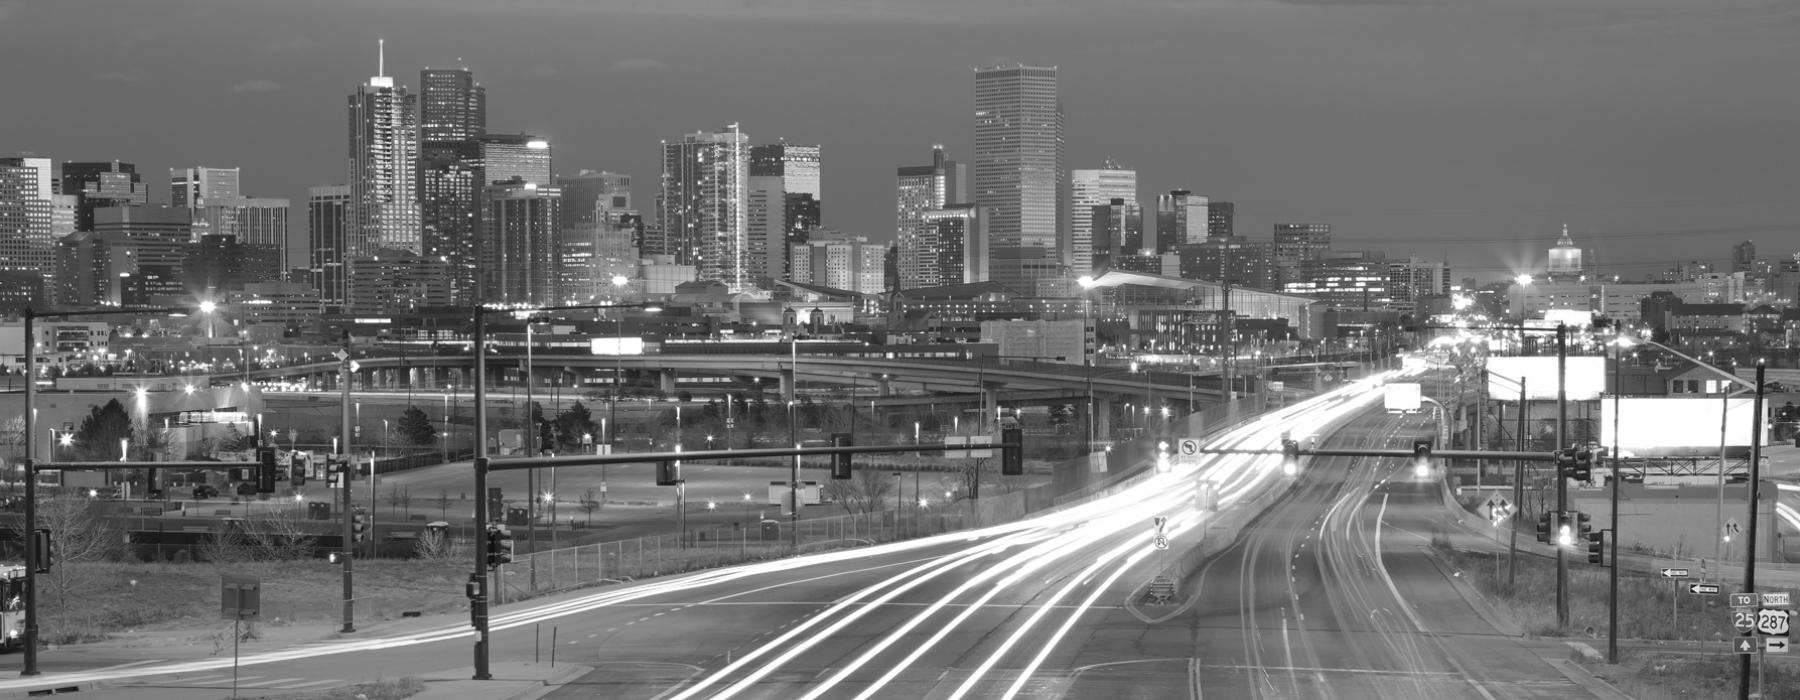 Denver traffic at night